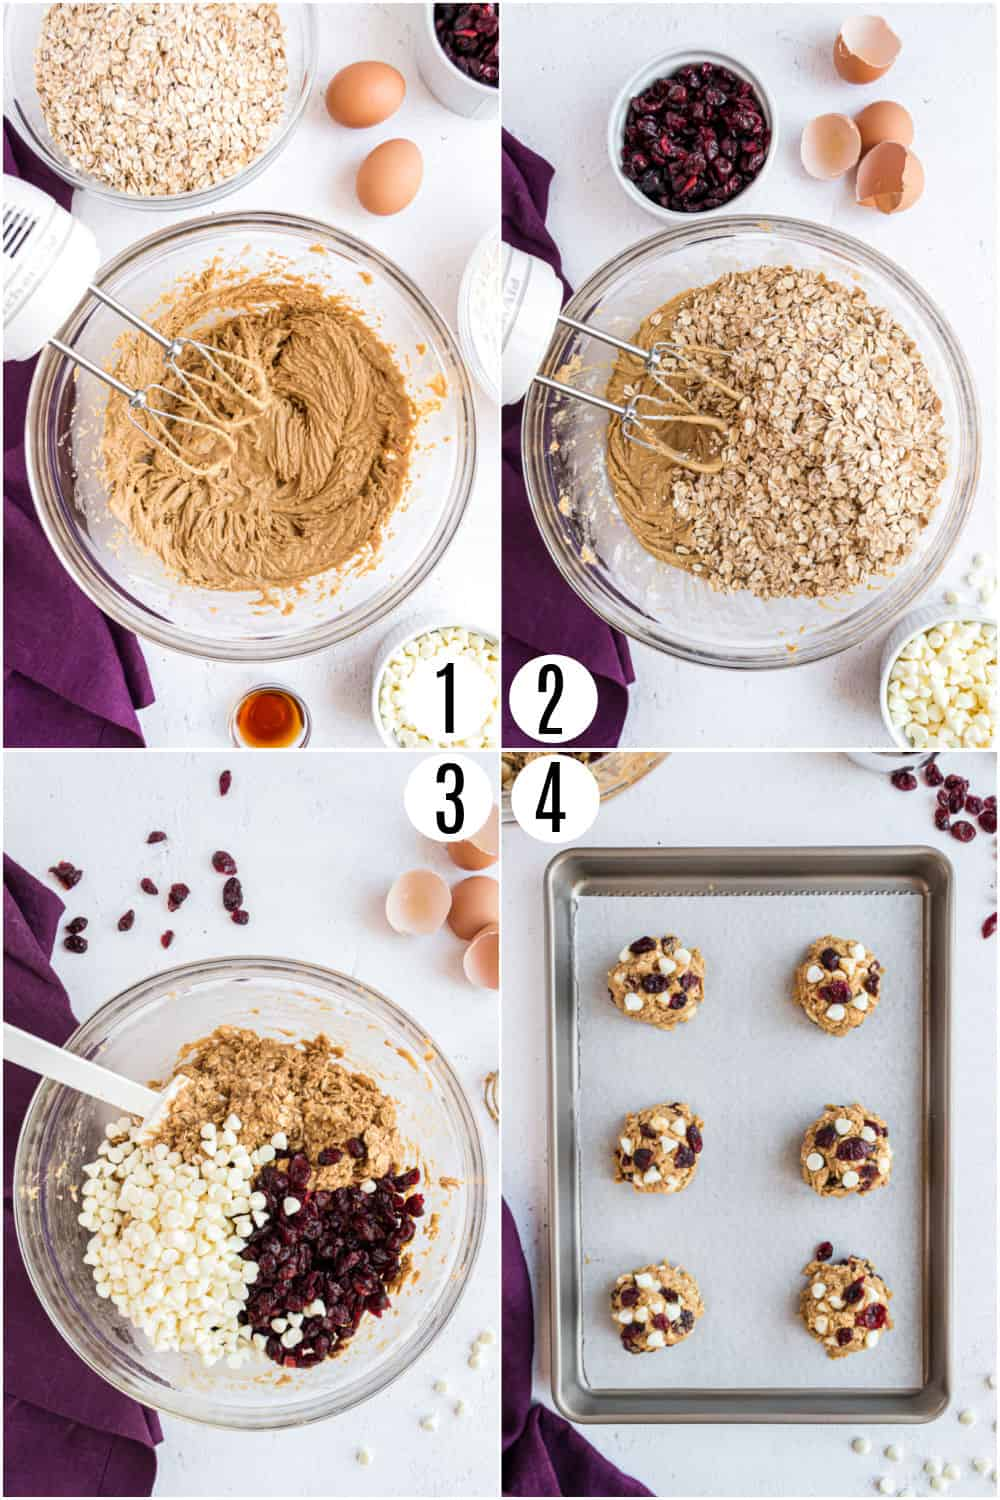 Step by step photos showing how to make oatmeal cookies with white chocolate and cranberries.